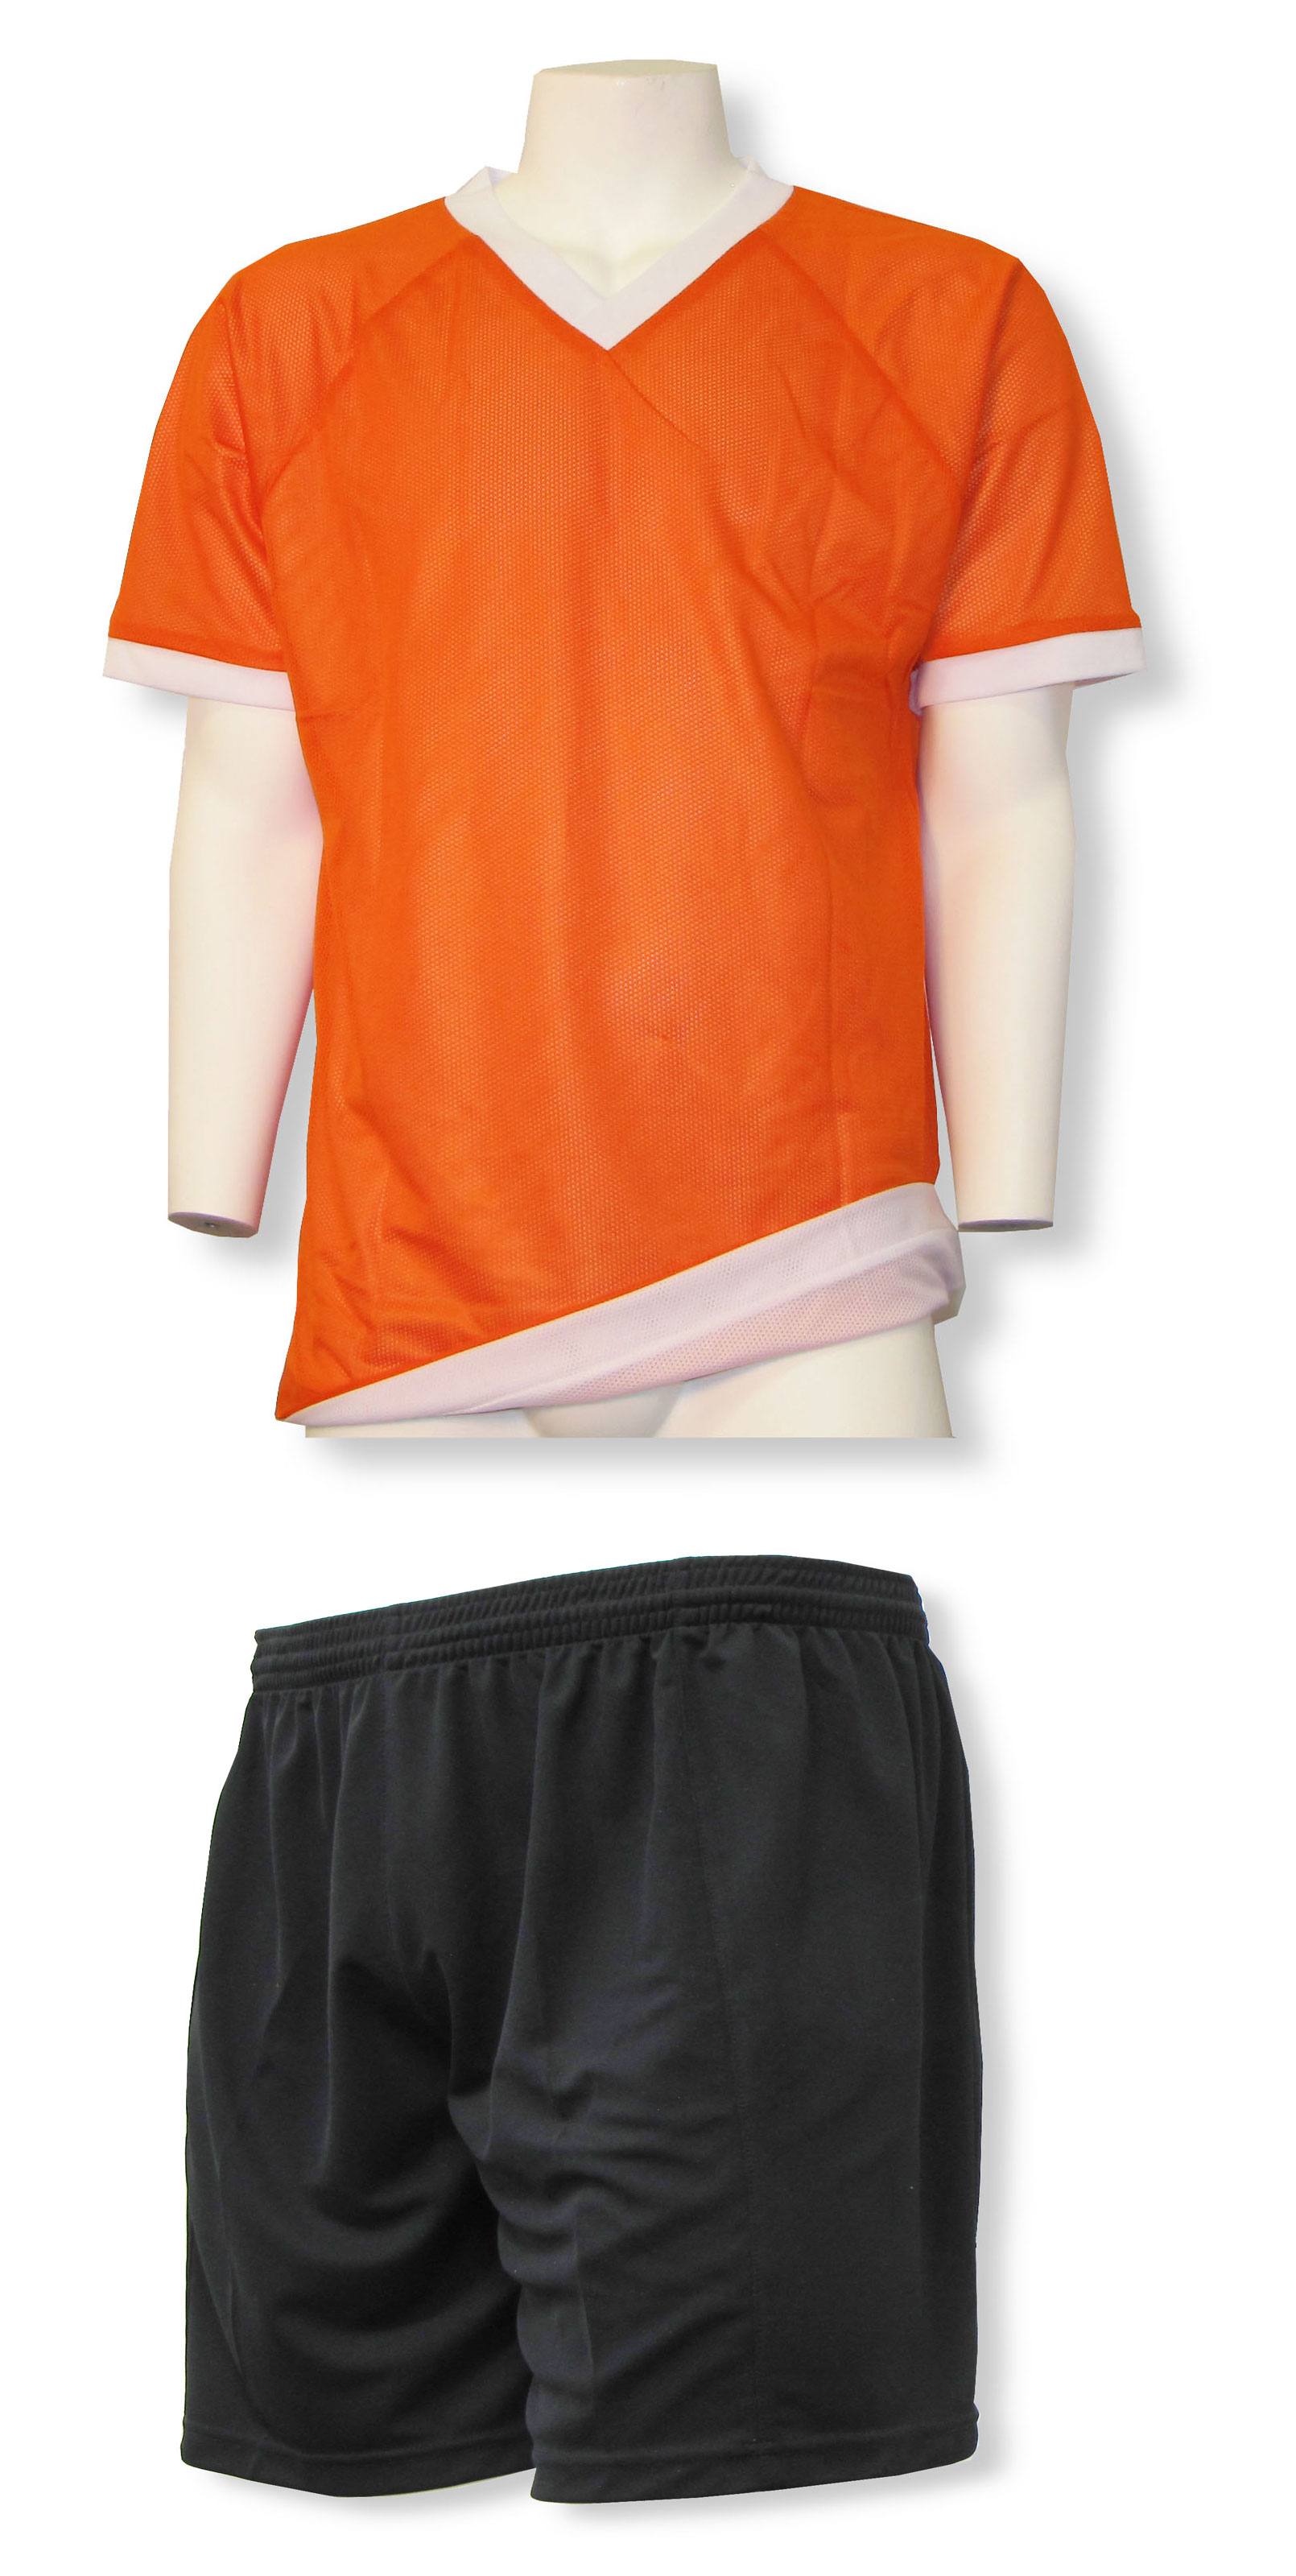 Reversible sports uniform jersey in orange/white with black shorts by Code Four Athletics